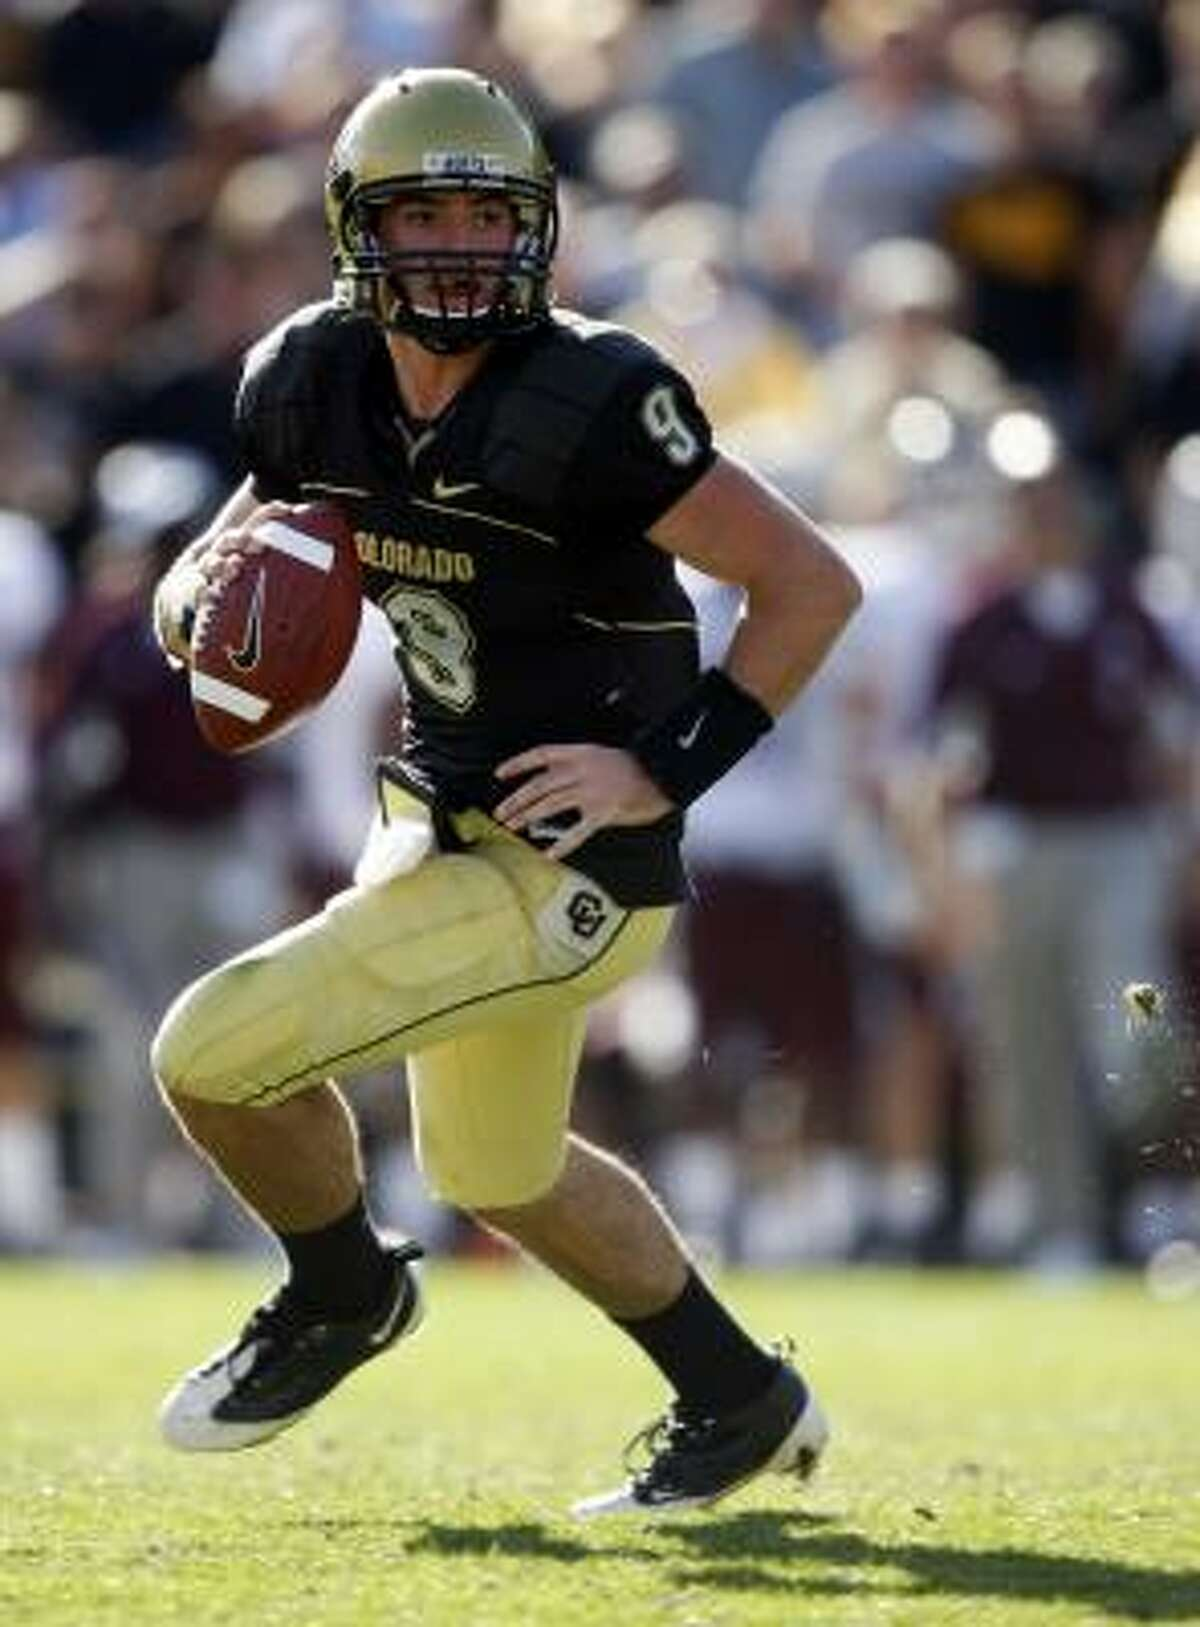 Colorado quarterback Tyler Hansen was sacked eight times but threw for 271 yards.